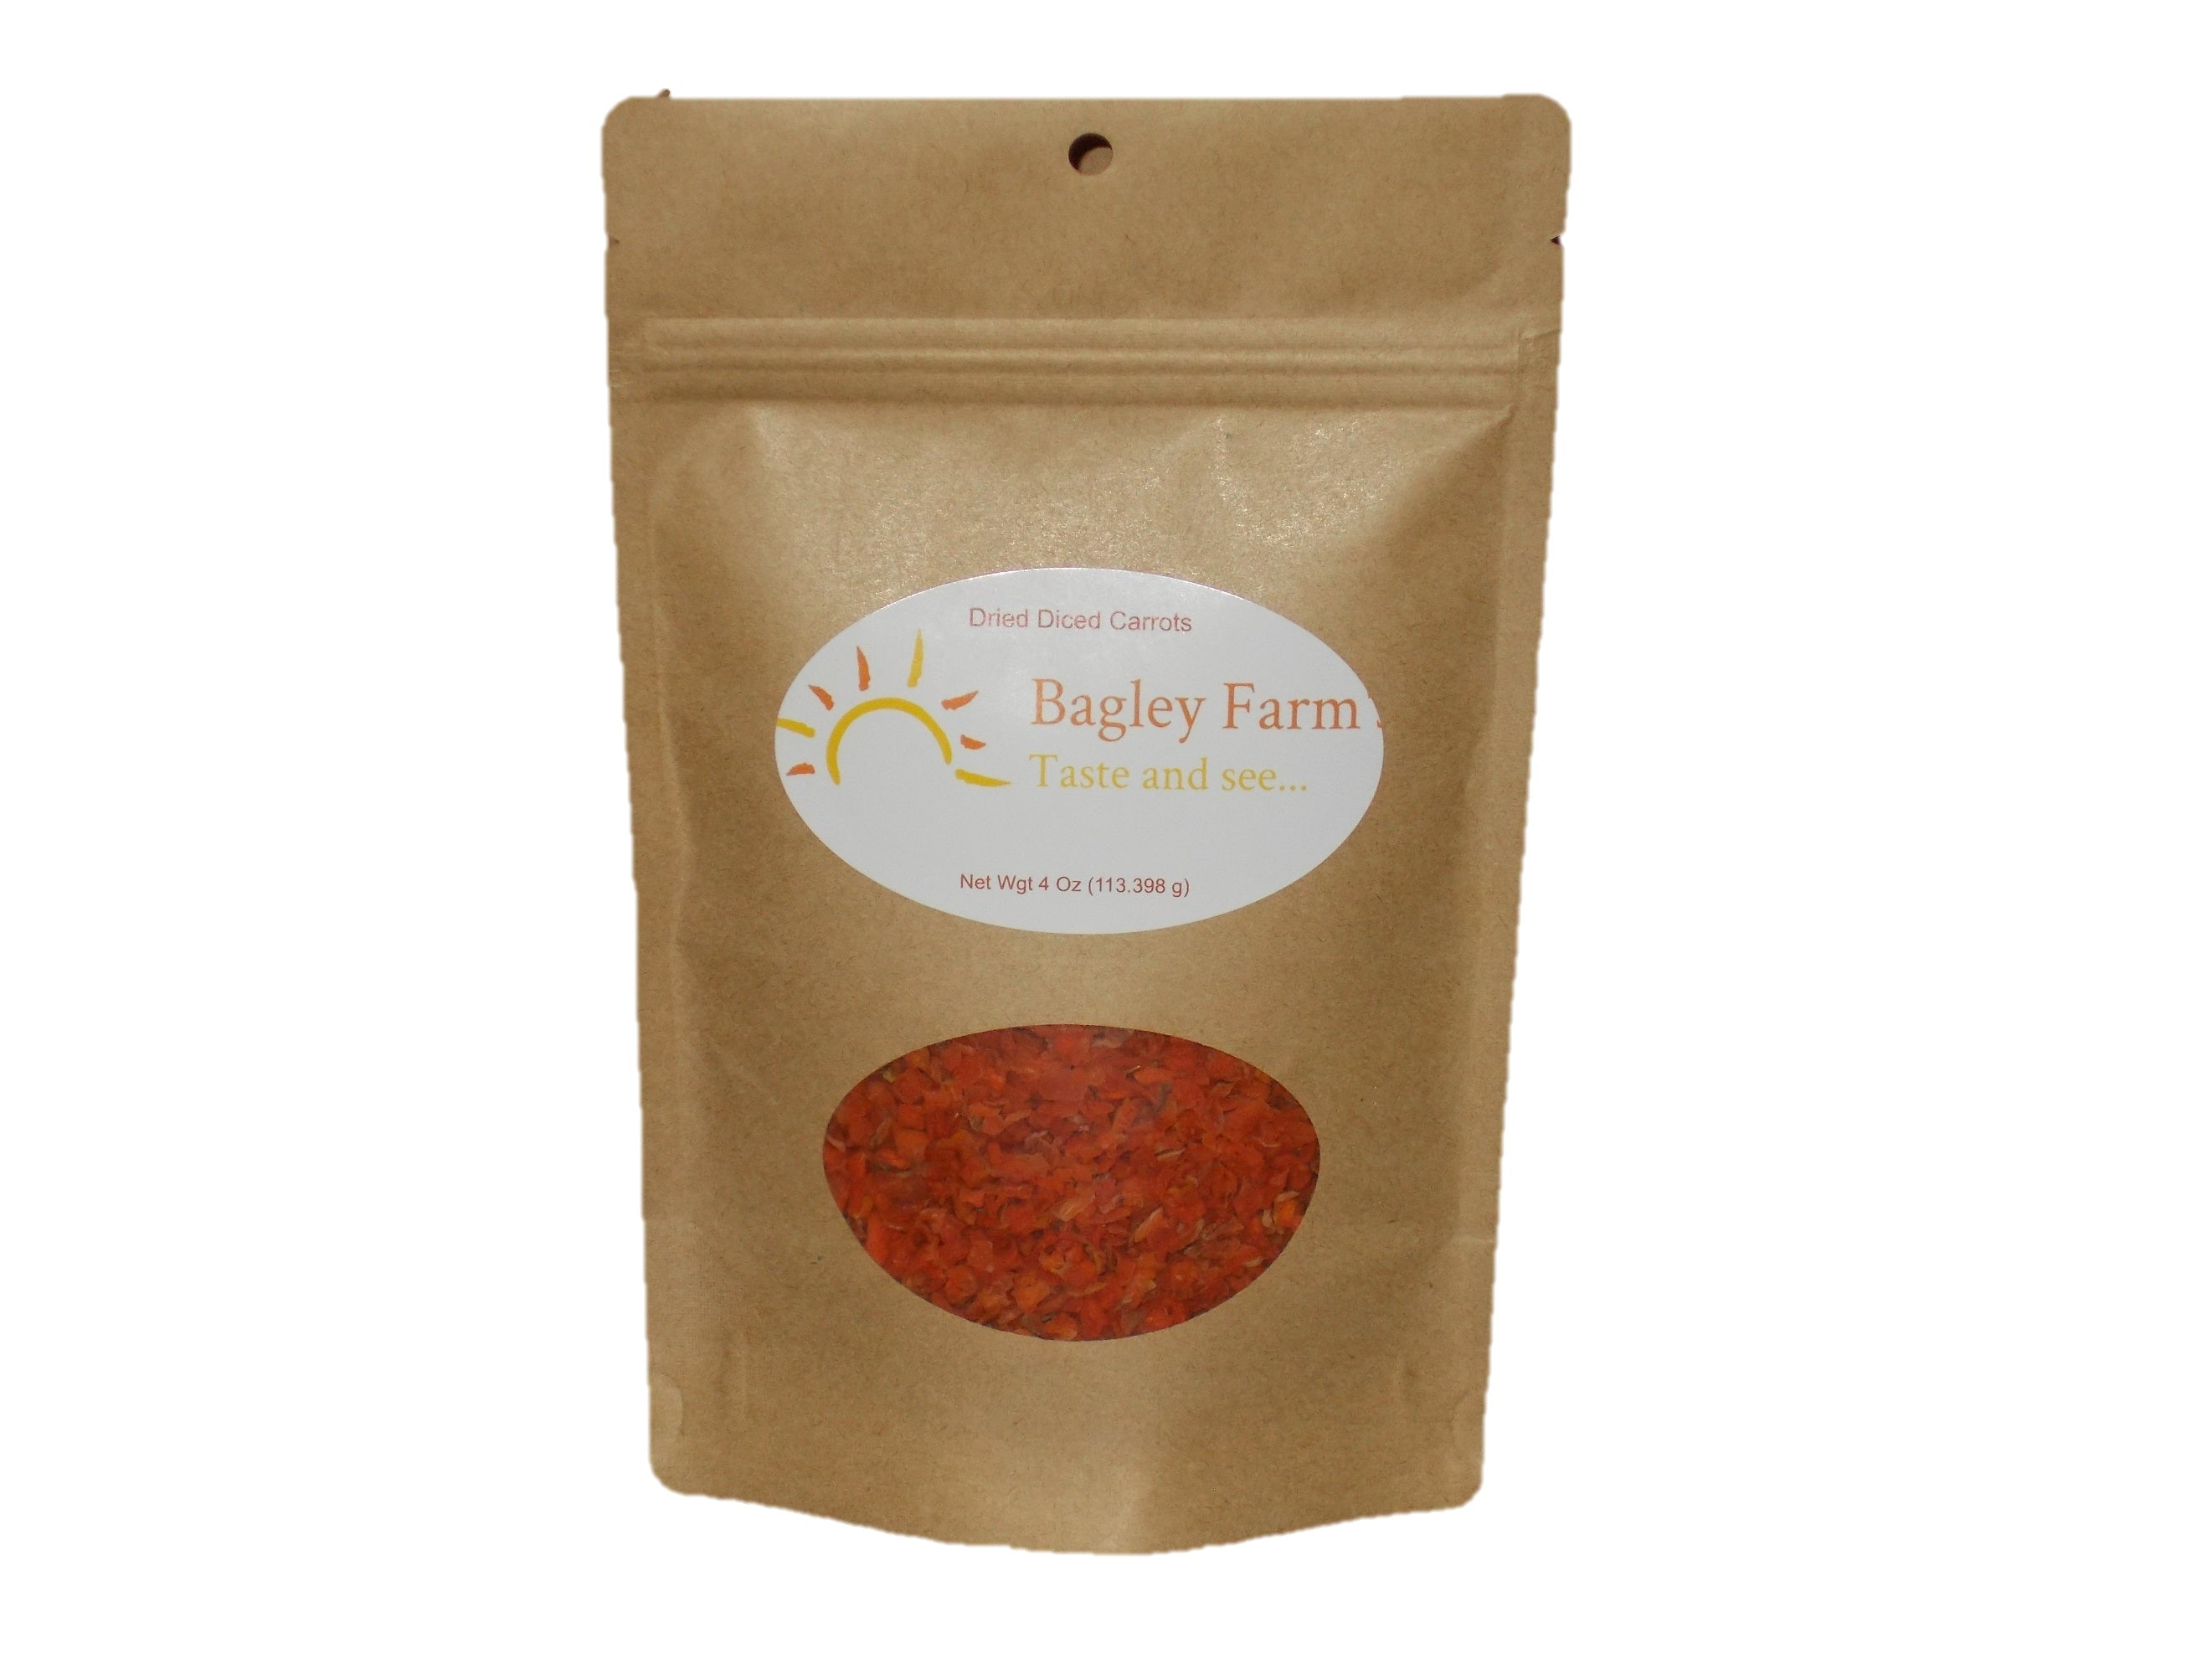 Dried Diced Carrots 4 oz